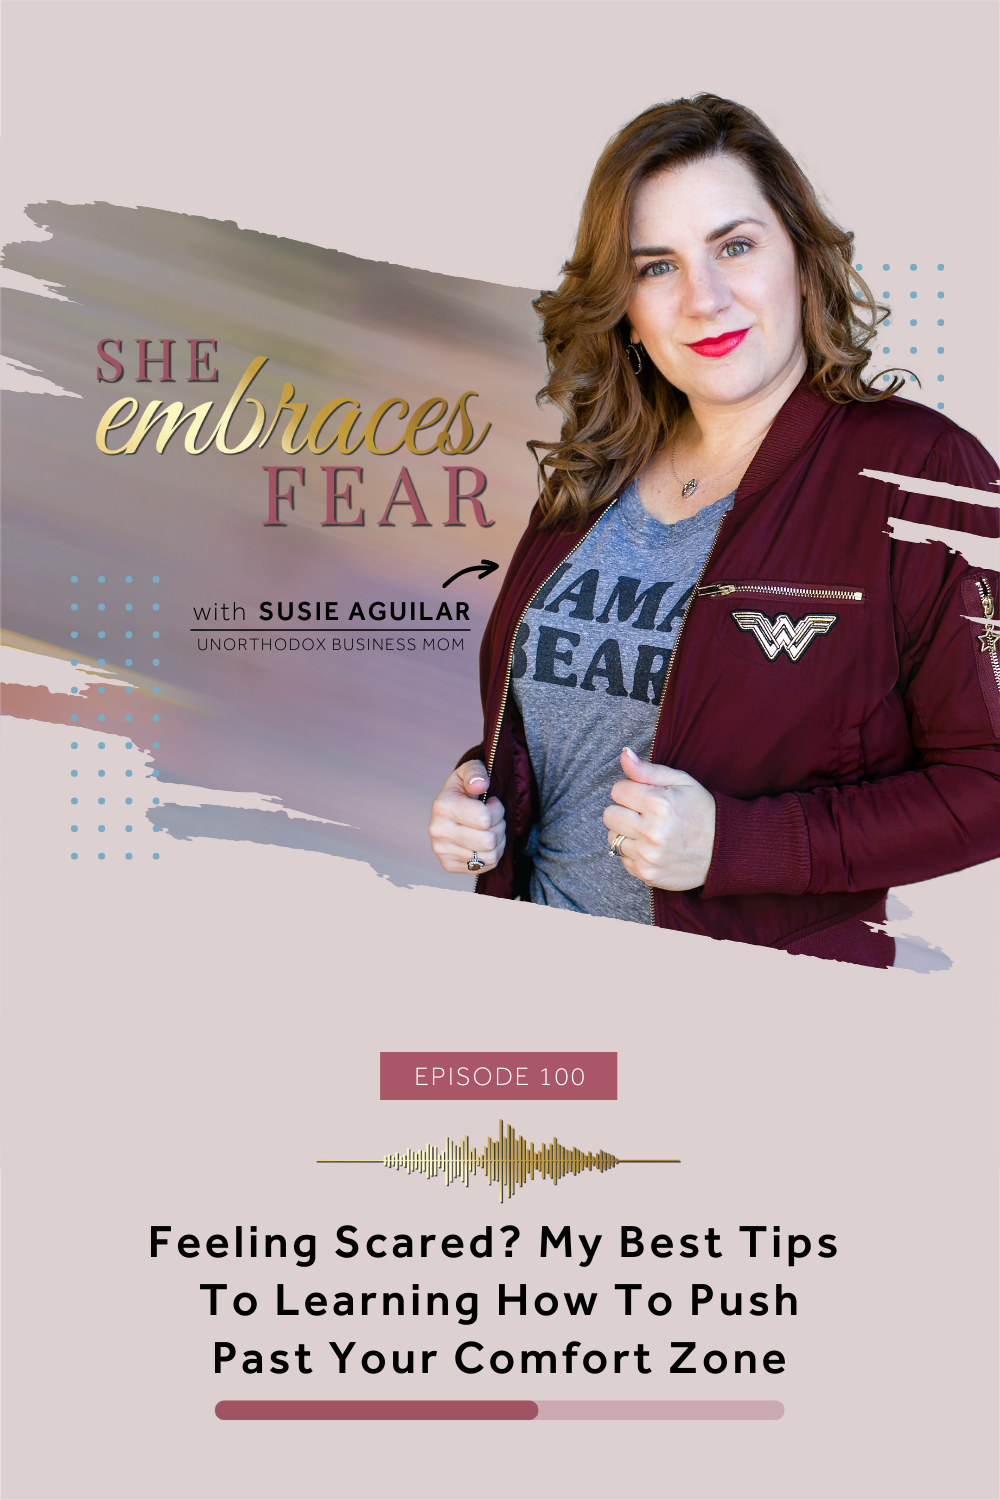 Doing things even when we feel scared and uncomfortable is my secret ingredient to phenomenal growth. Learn how to push through your pain and discomfort.